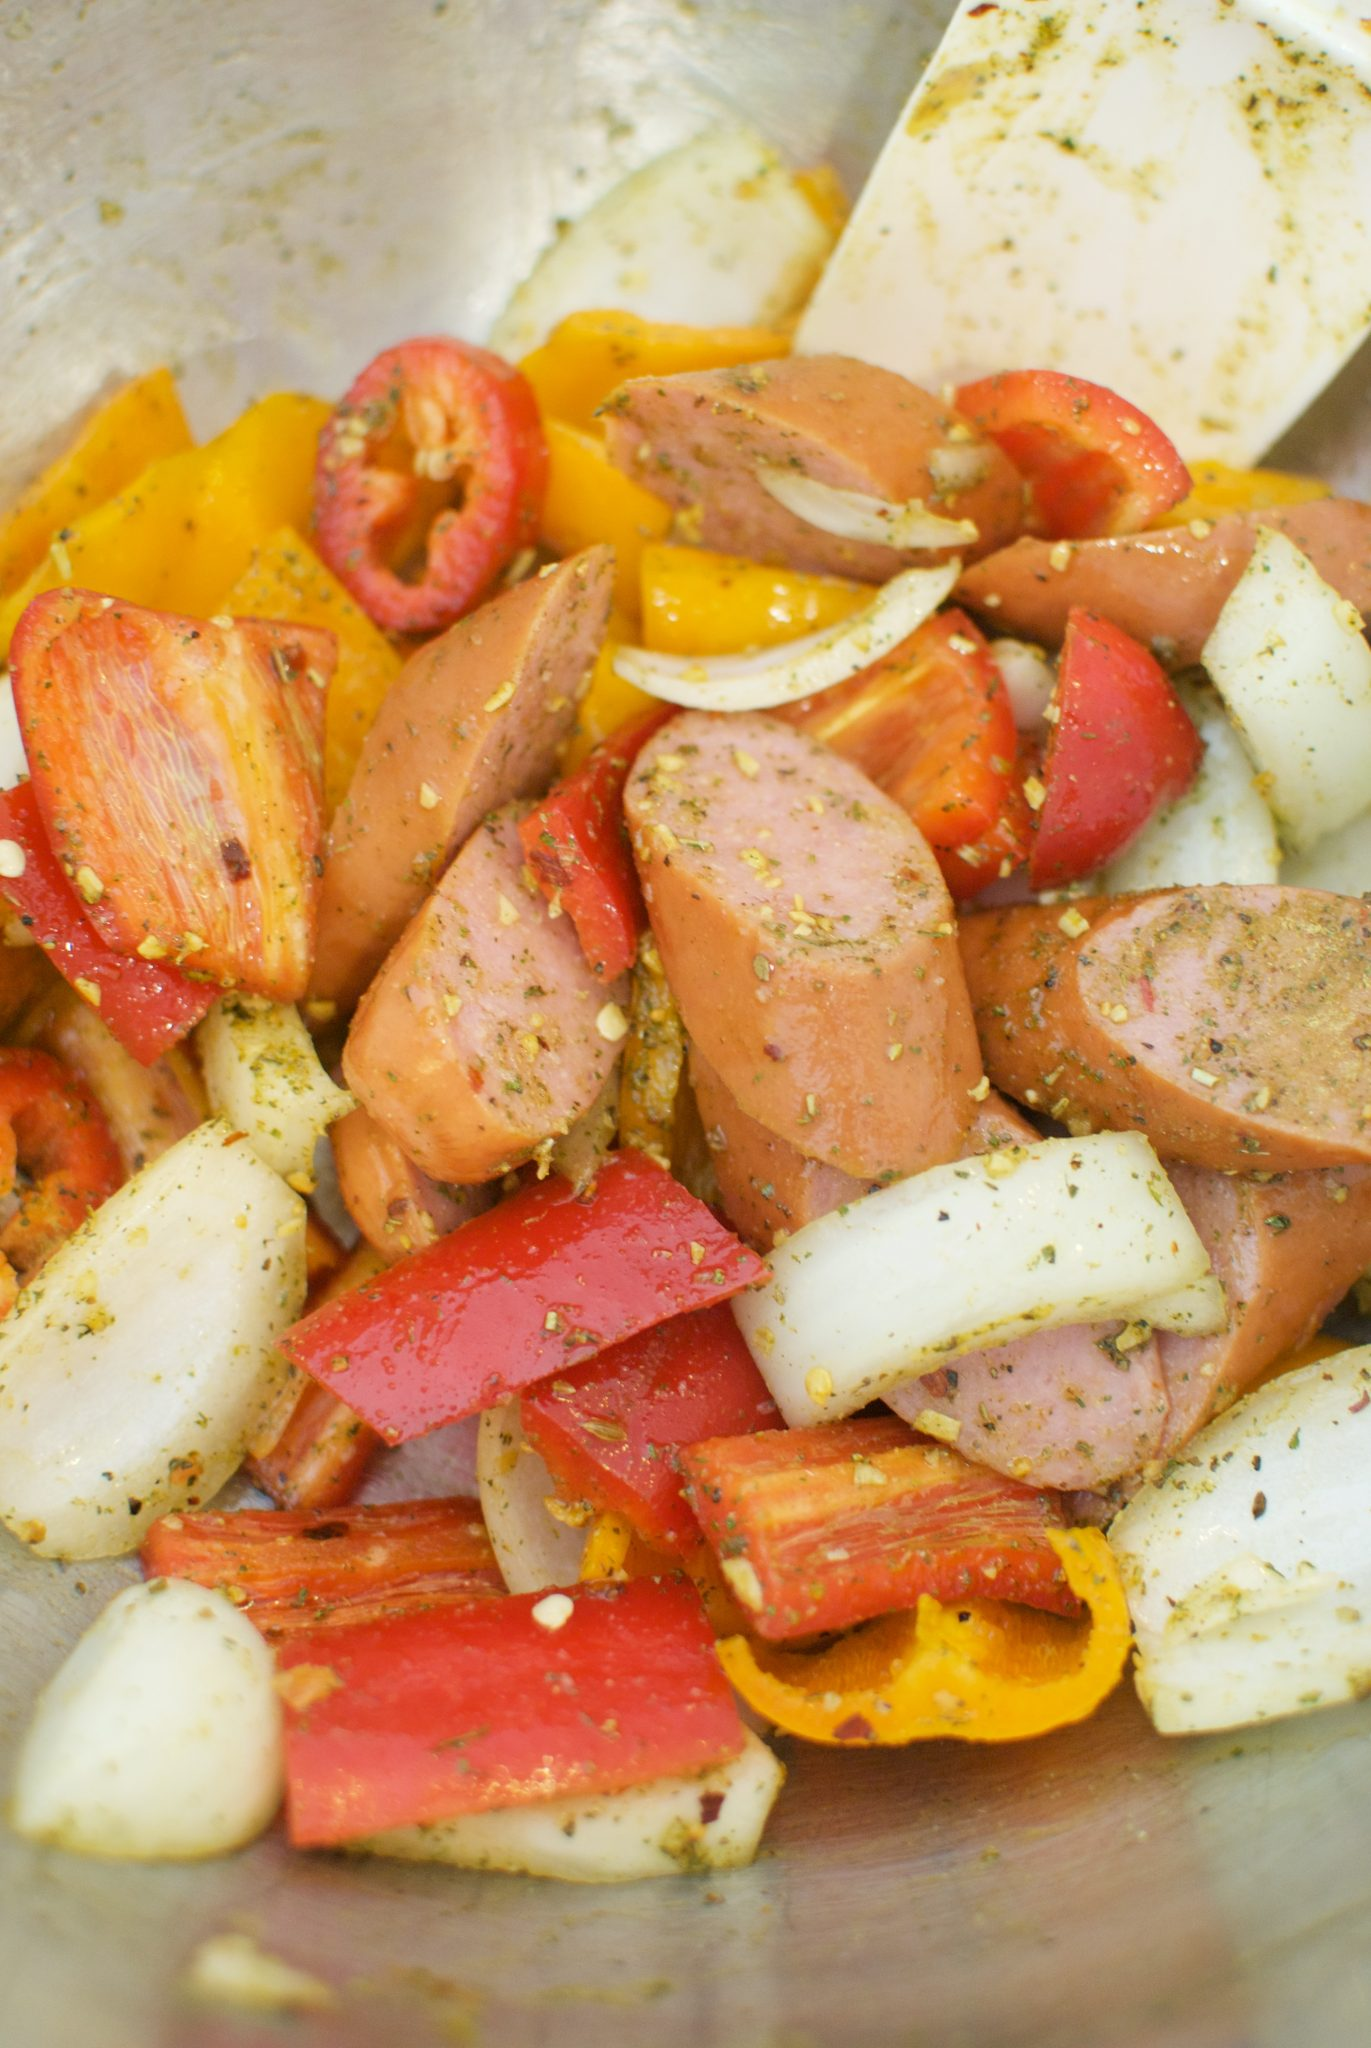 Roasted Sausage & Pepper Skillet Supper